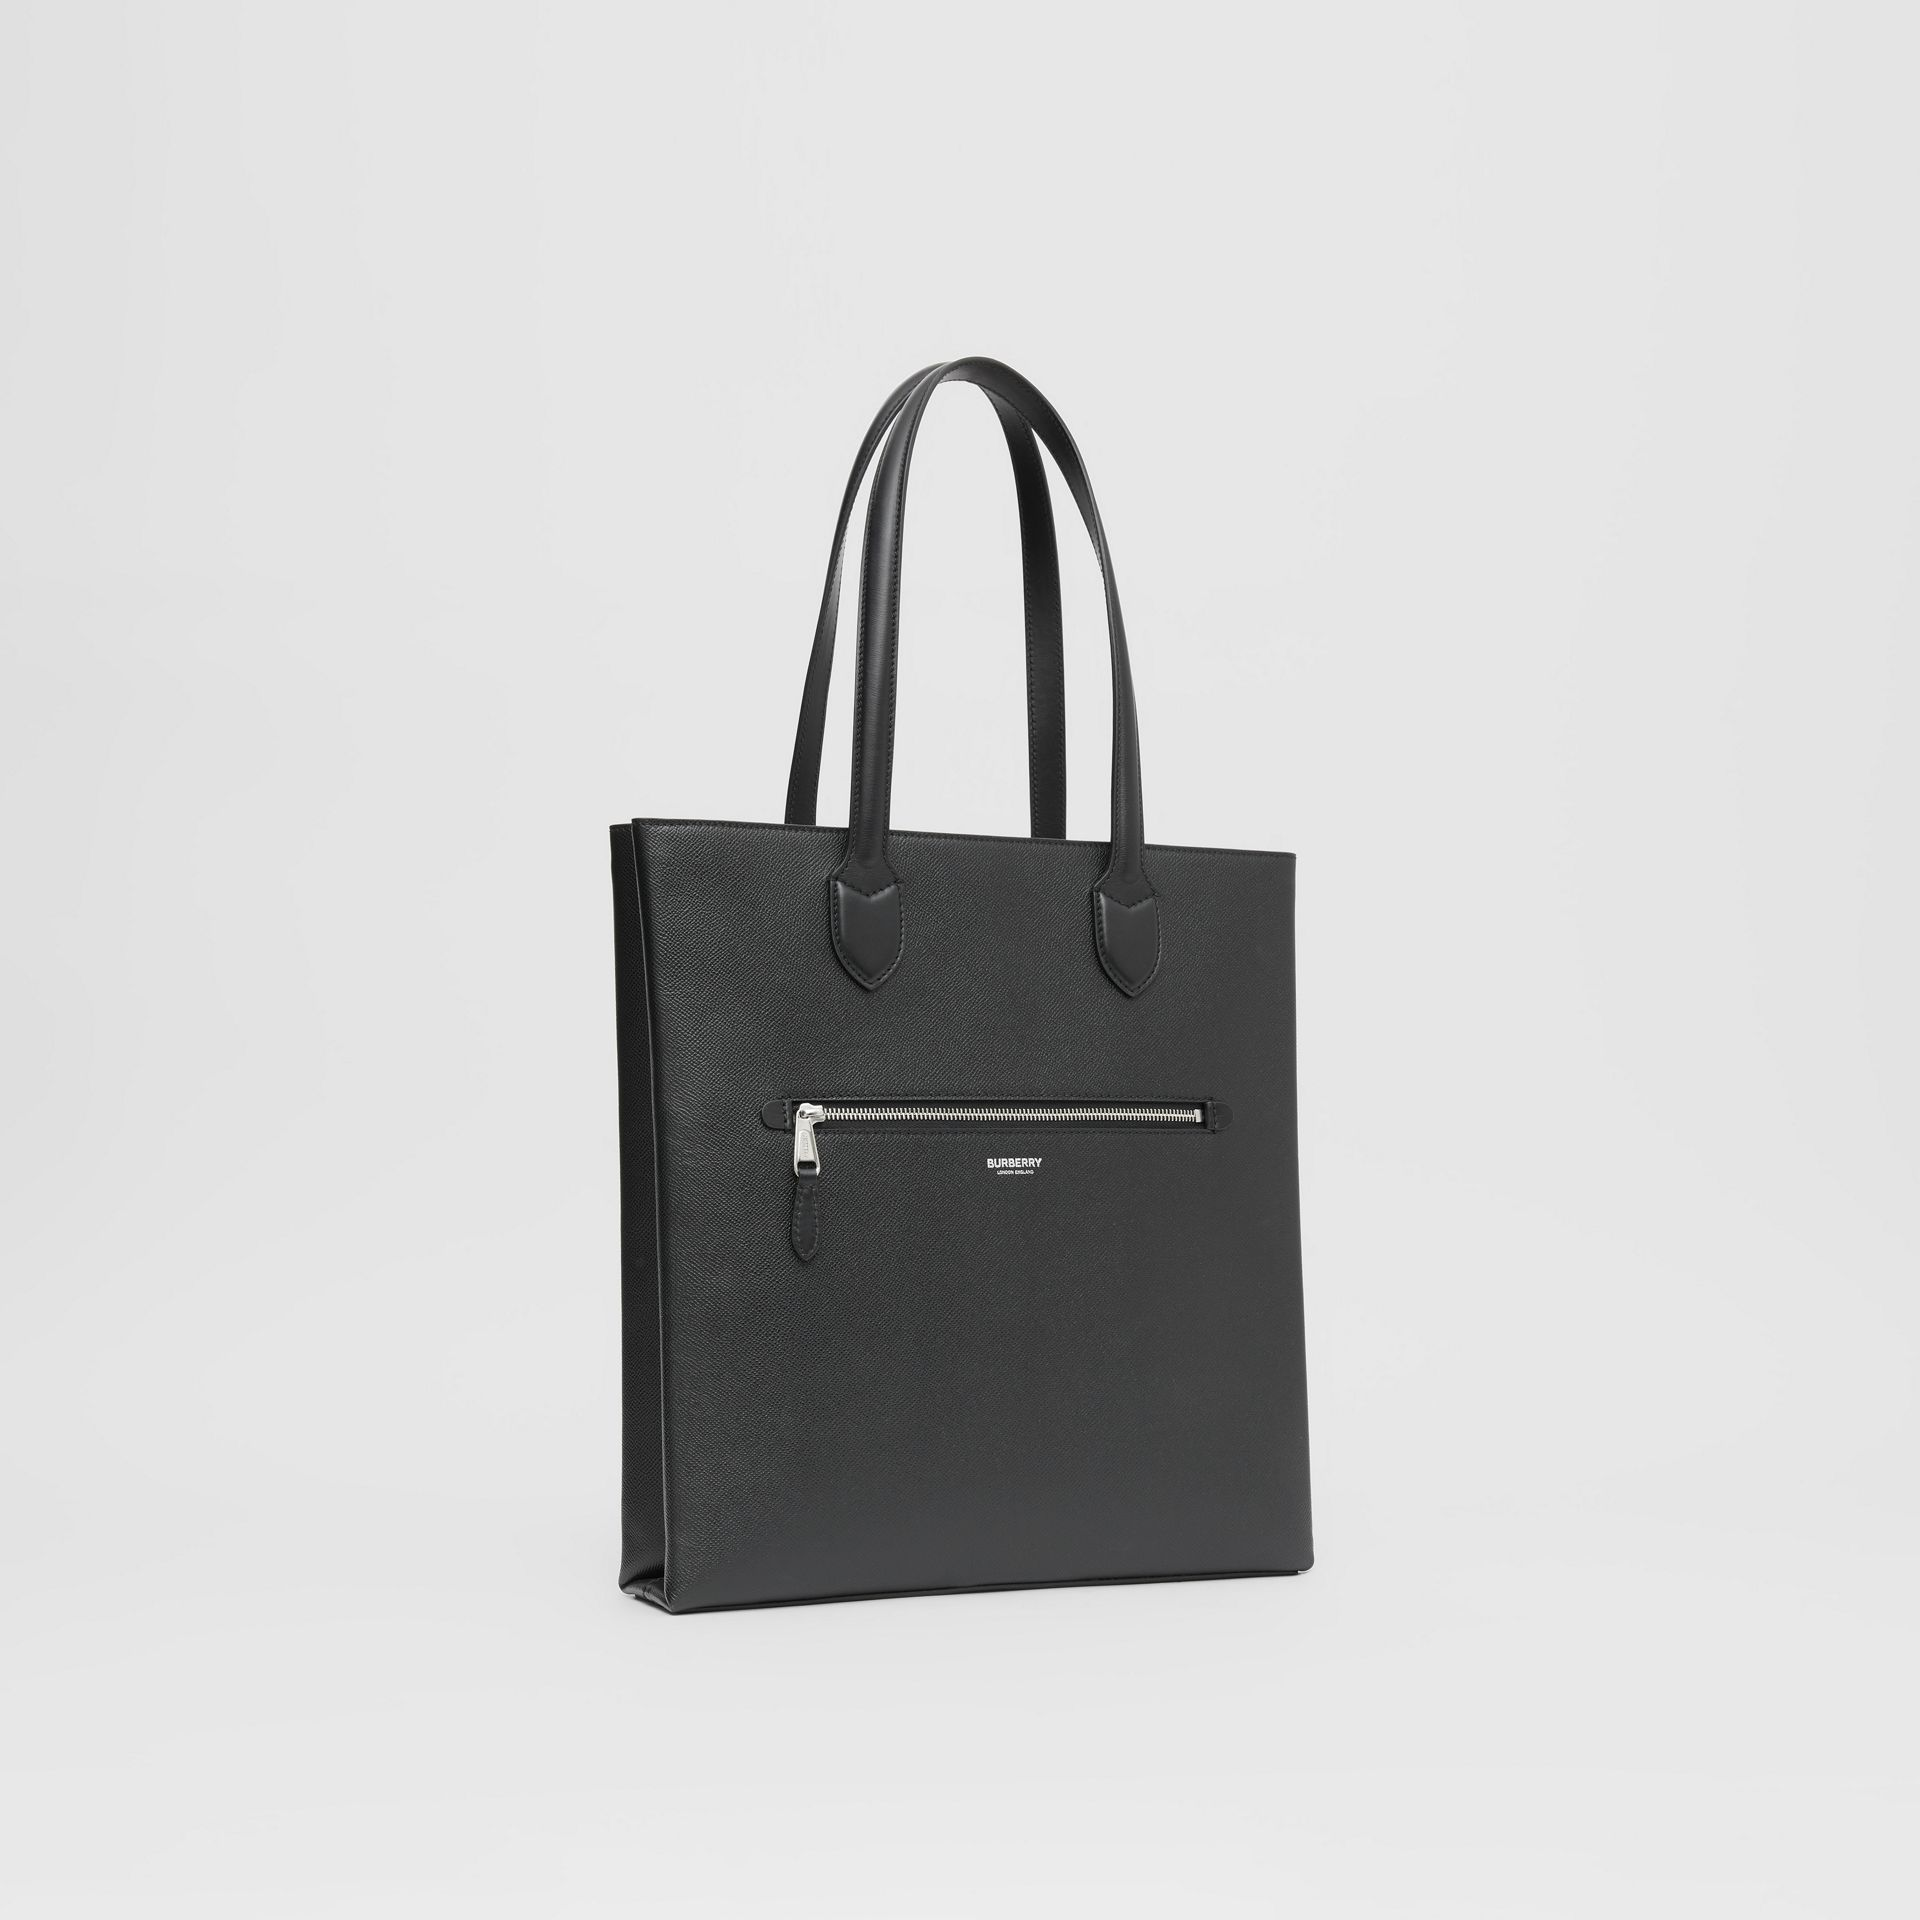 Medium Grainy Leather Tote in Black - Men | Burberry - gallery image 6